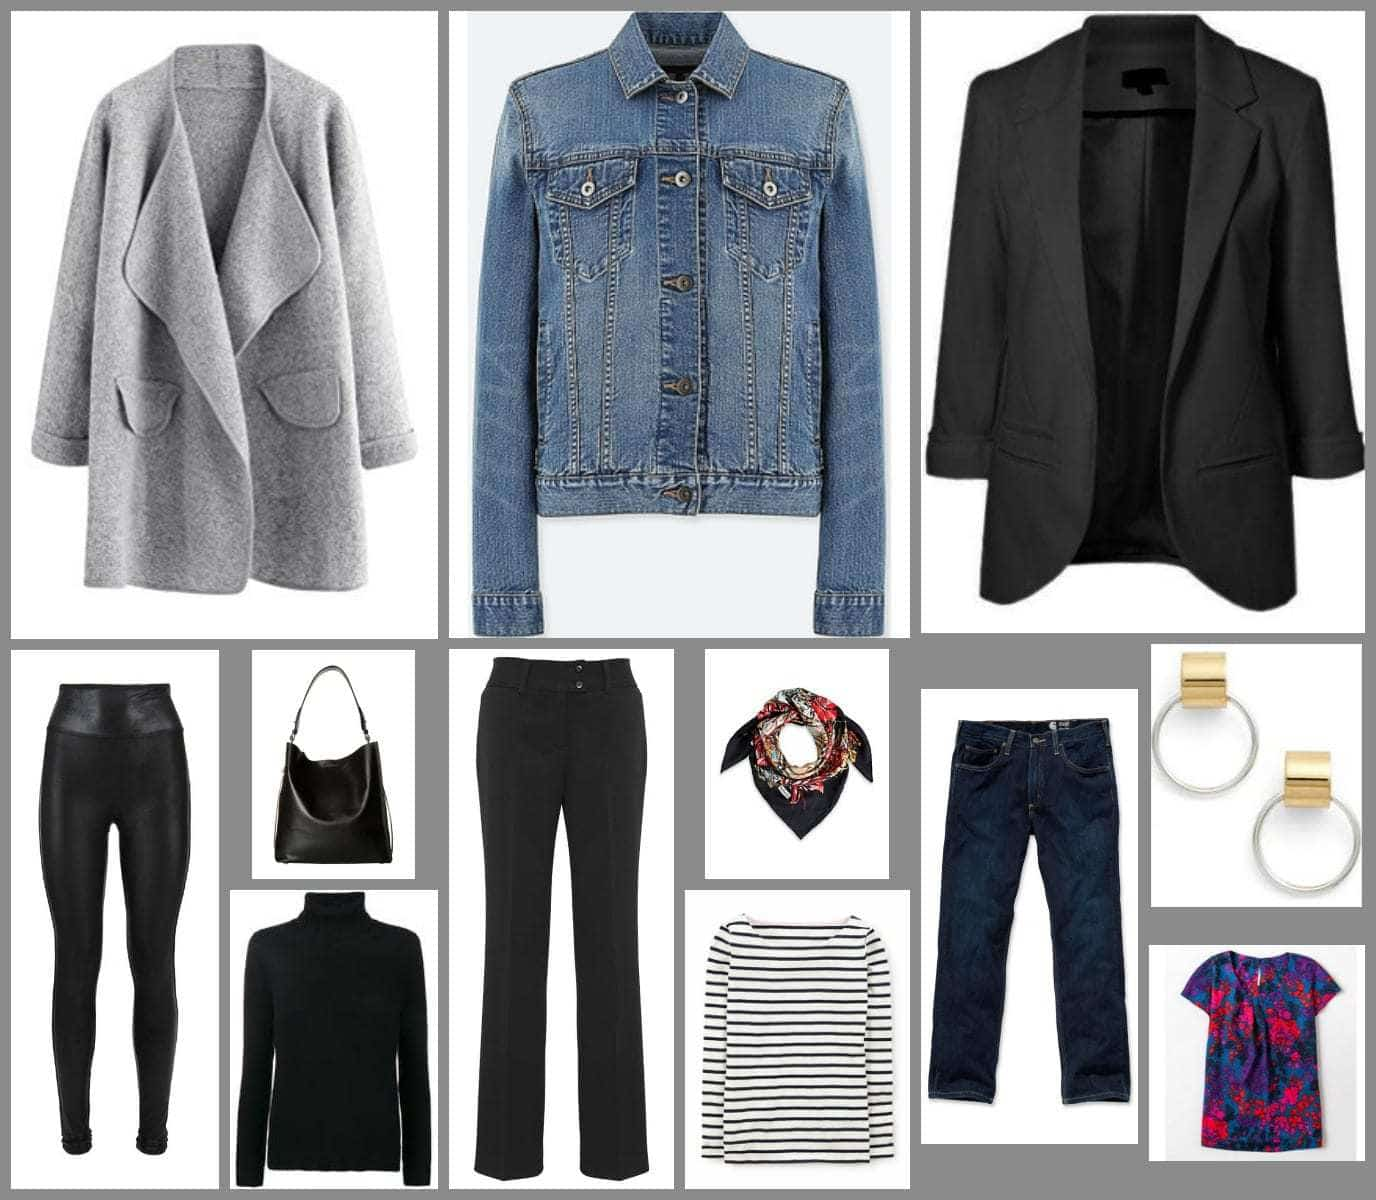 key layering pieces in a capsule wardrobe